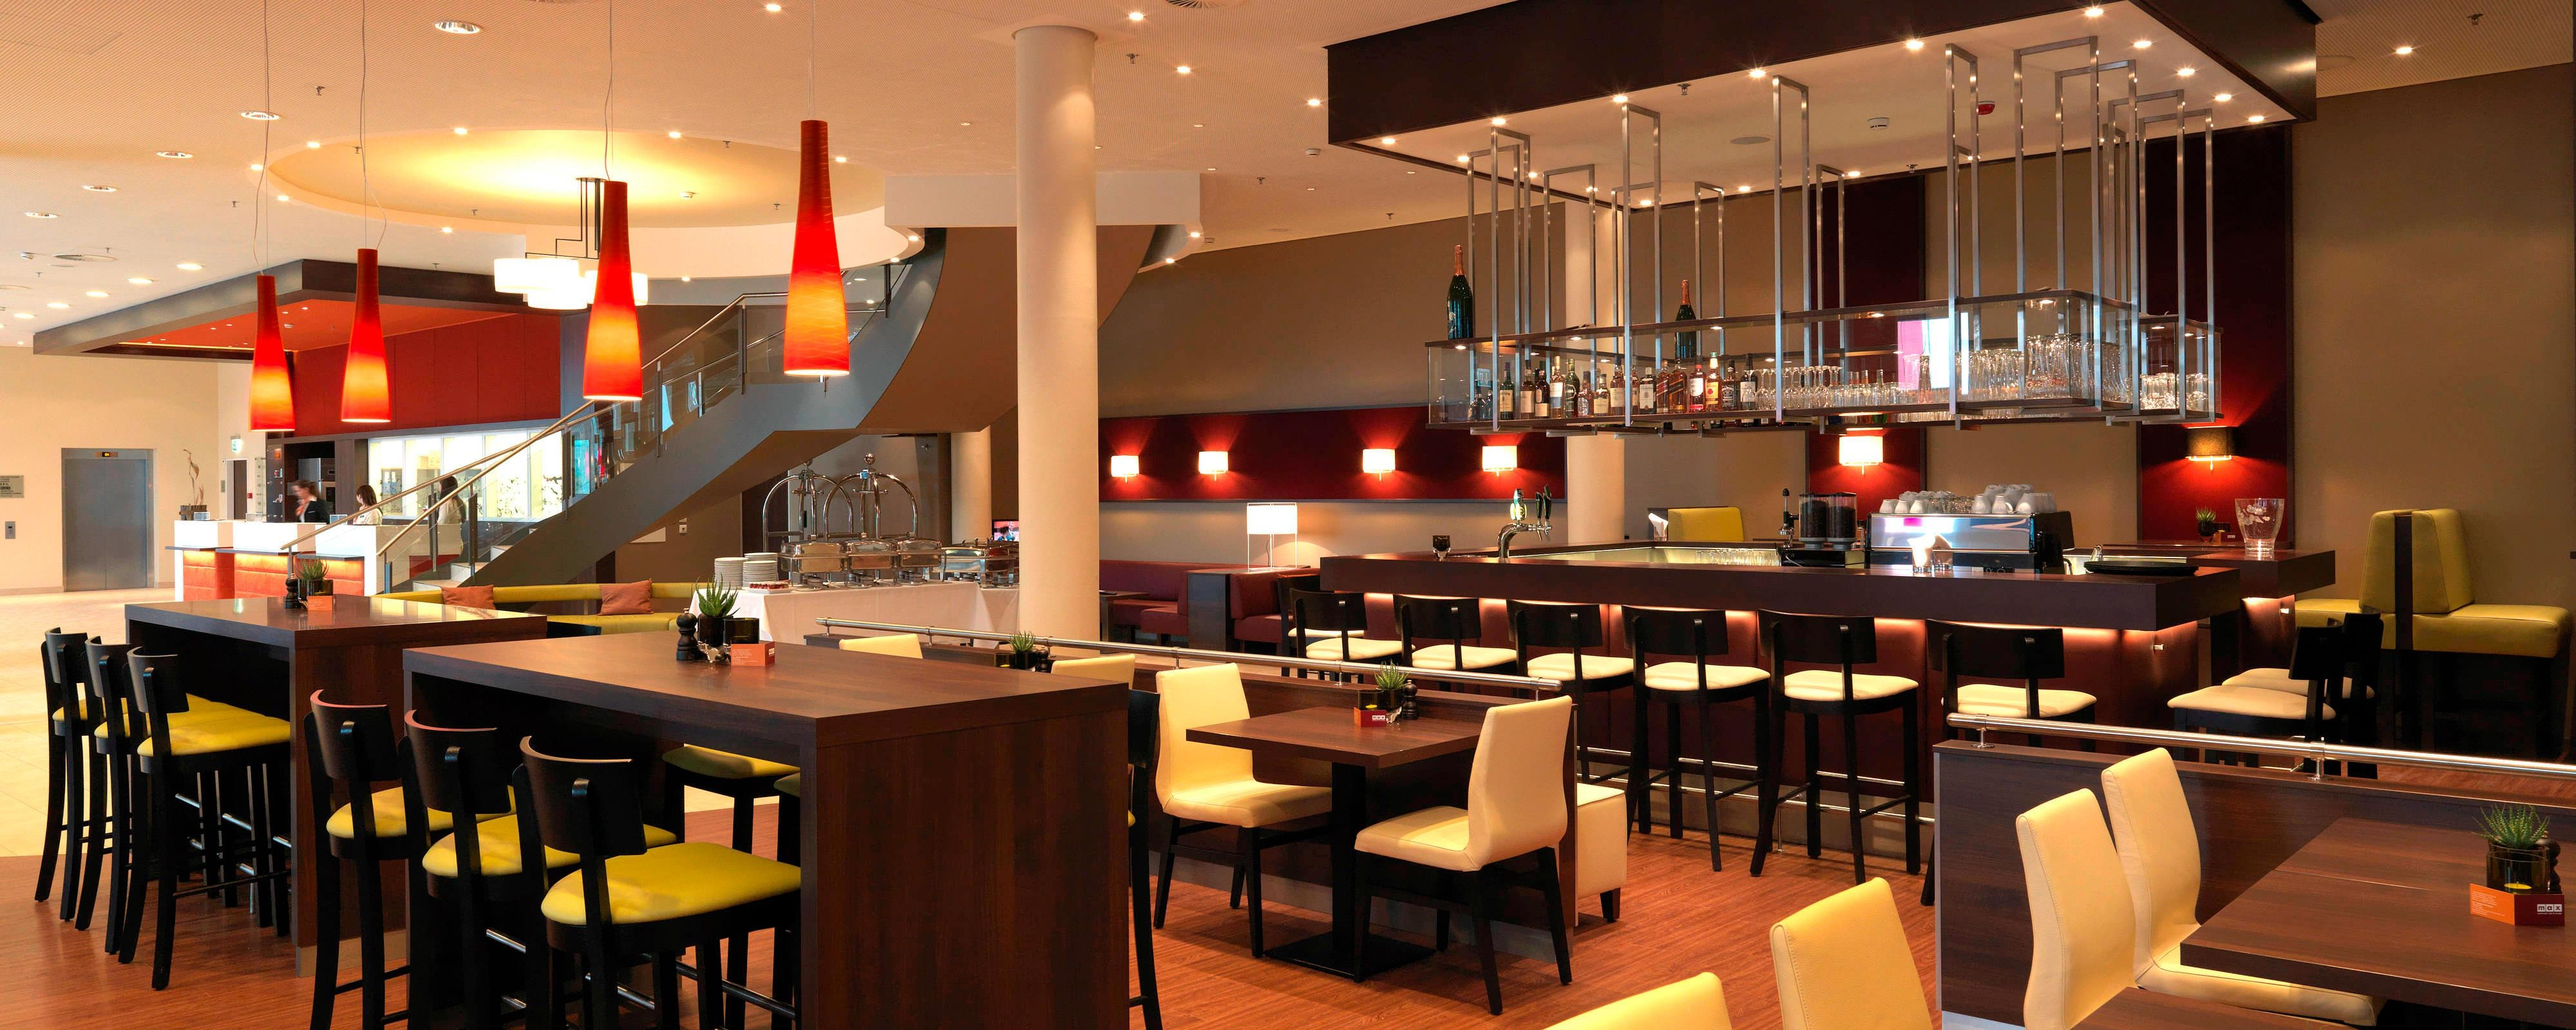 Courtyard Hotel Marriott Basel Restaurant